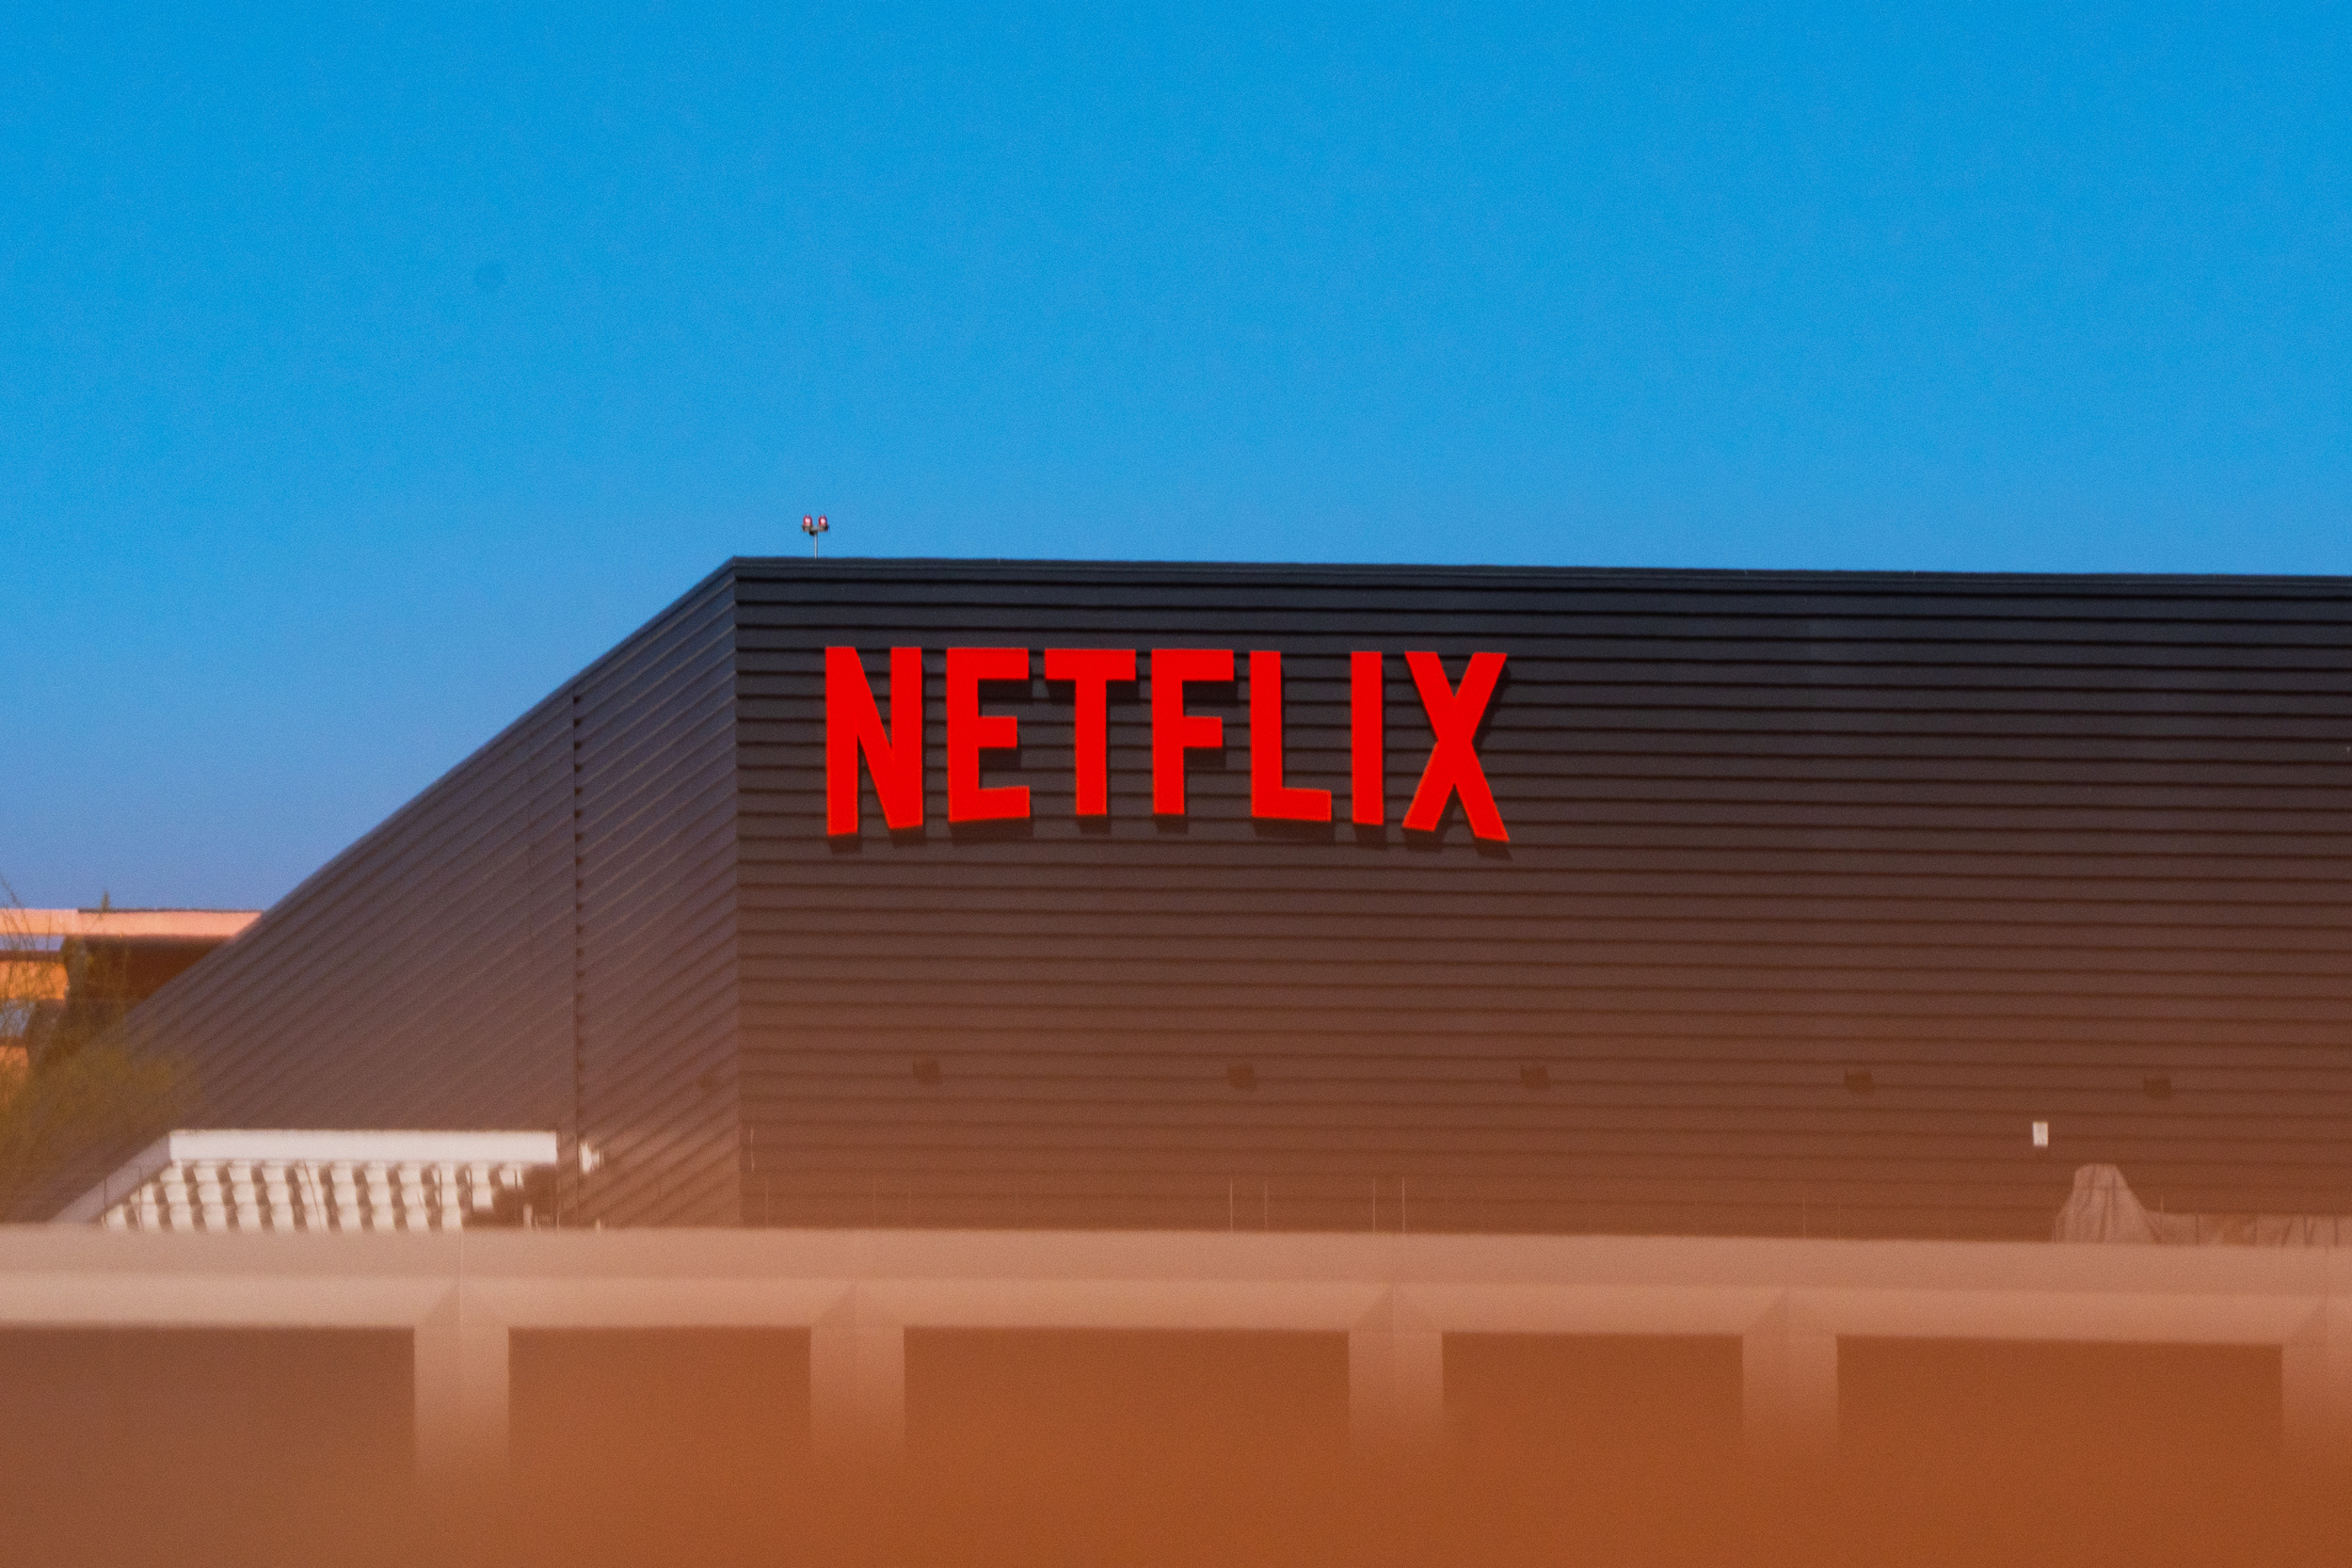 Netflix insider trading suspect pleads guilty to scheme that netted $3 million, feds say